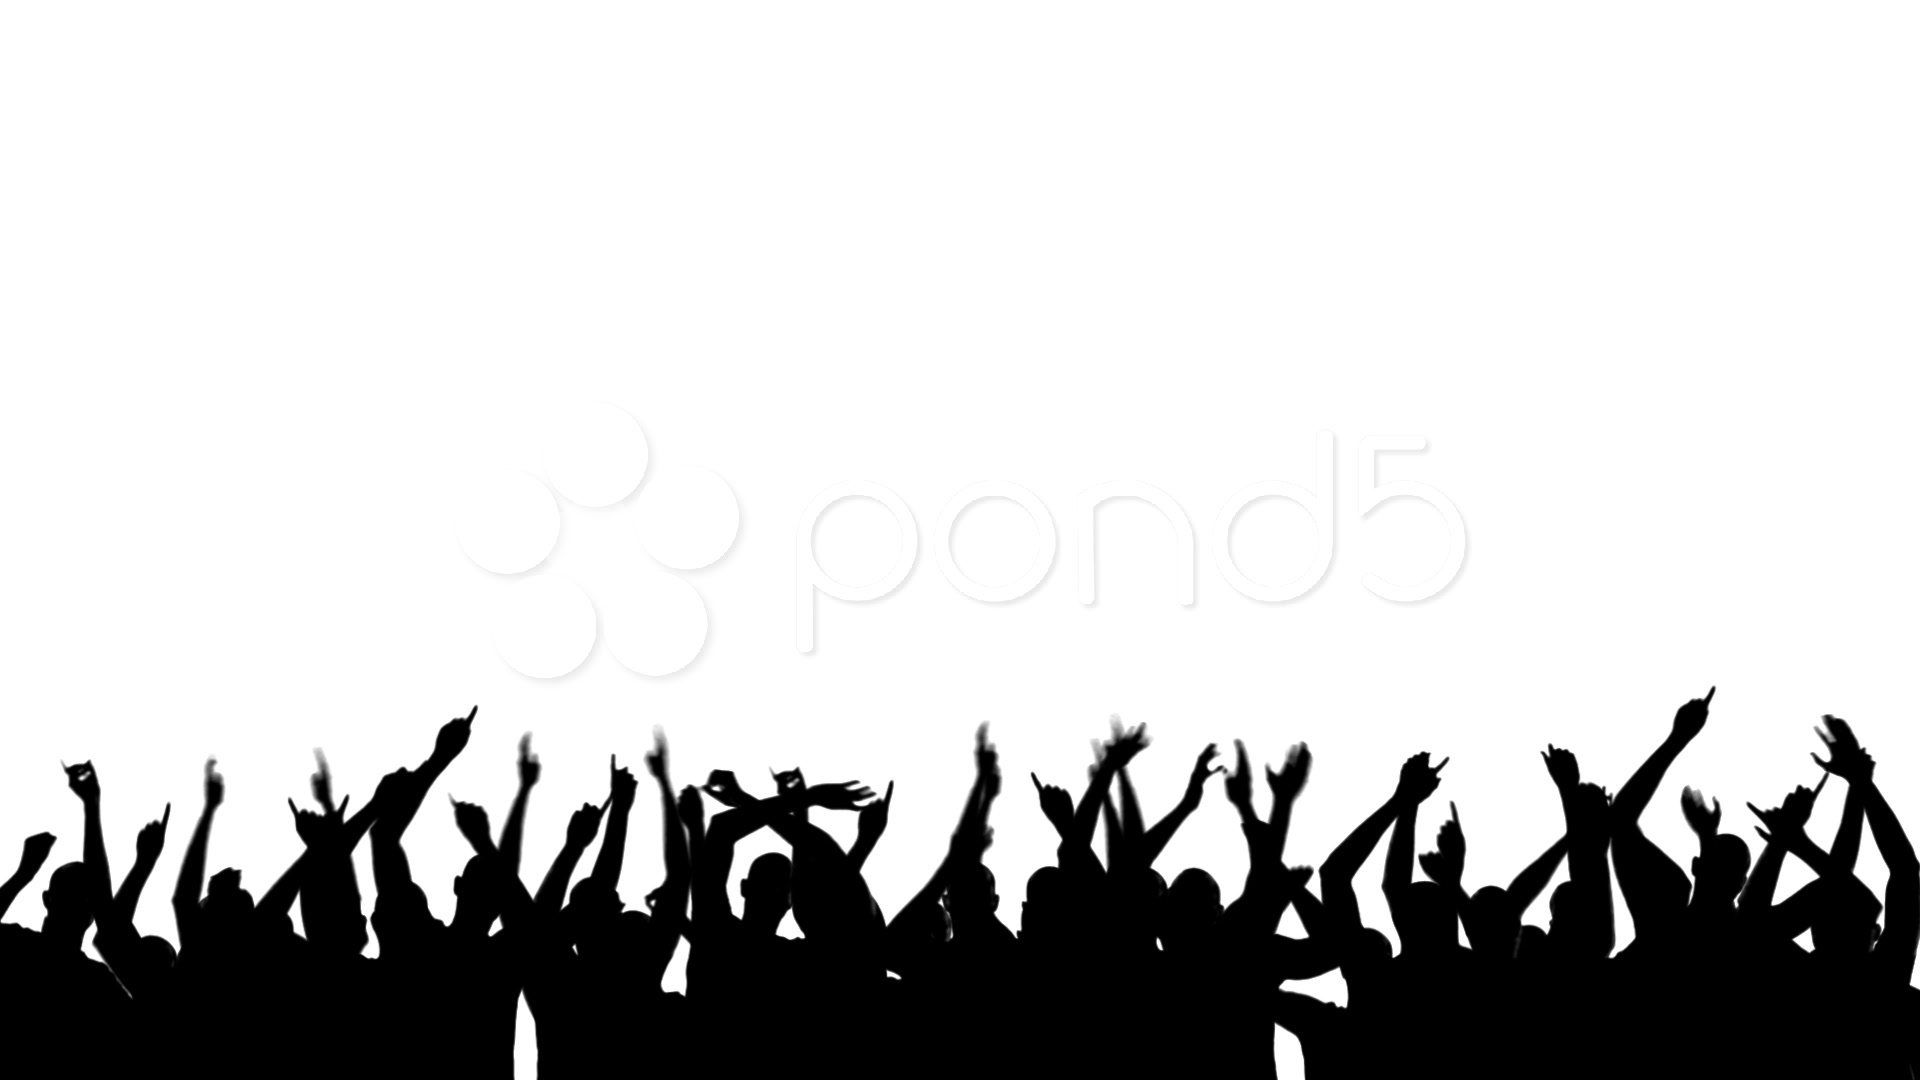 Silhouette . Crowd clipart graphic transparent library